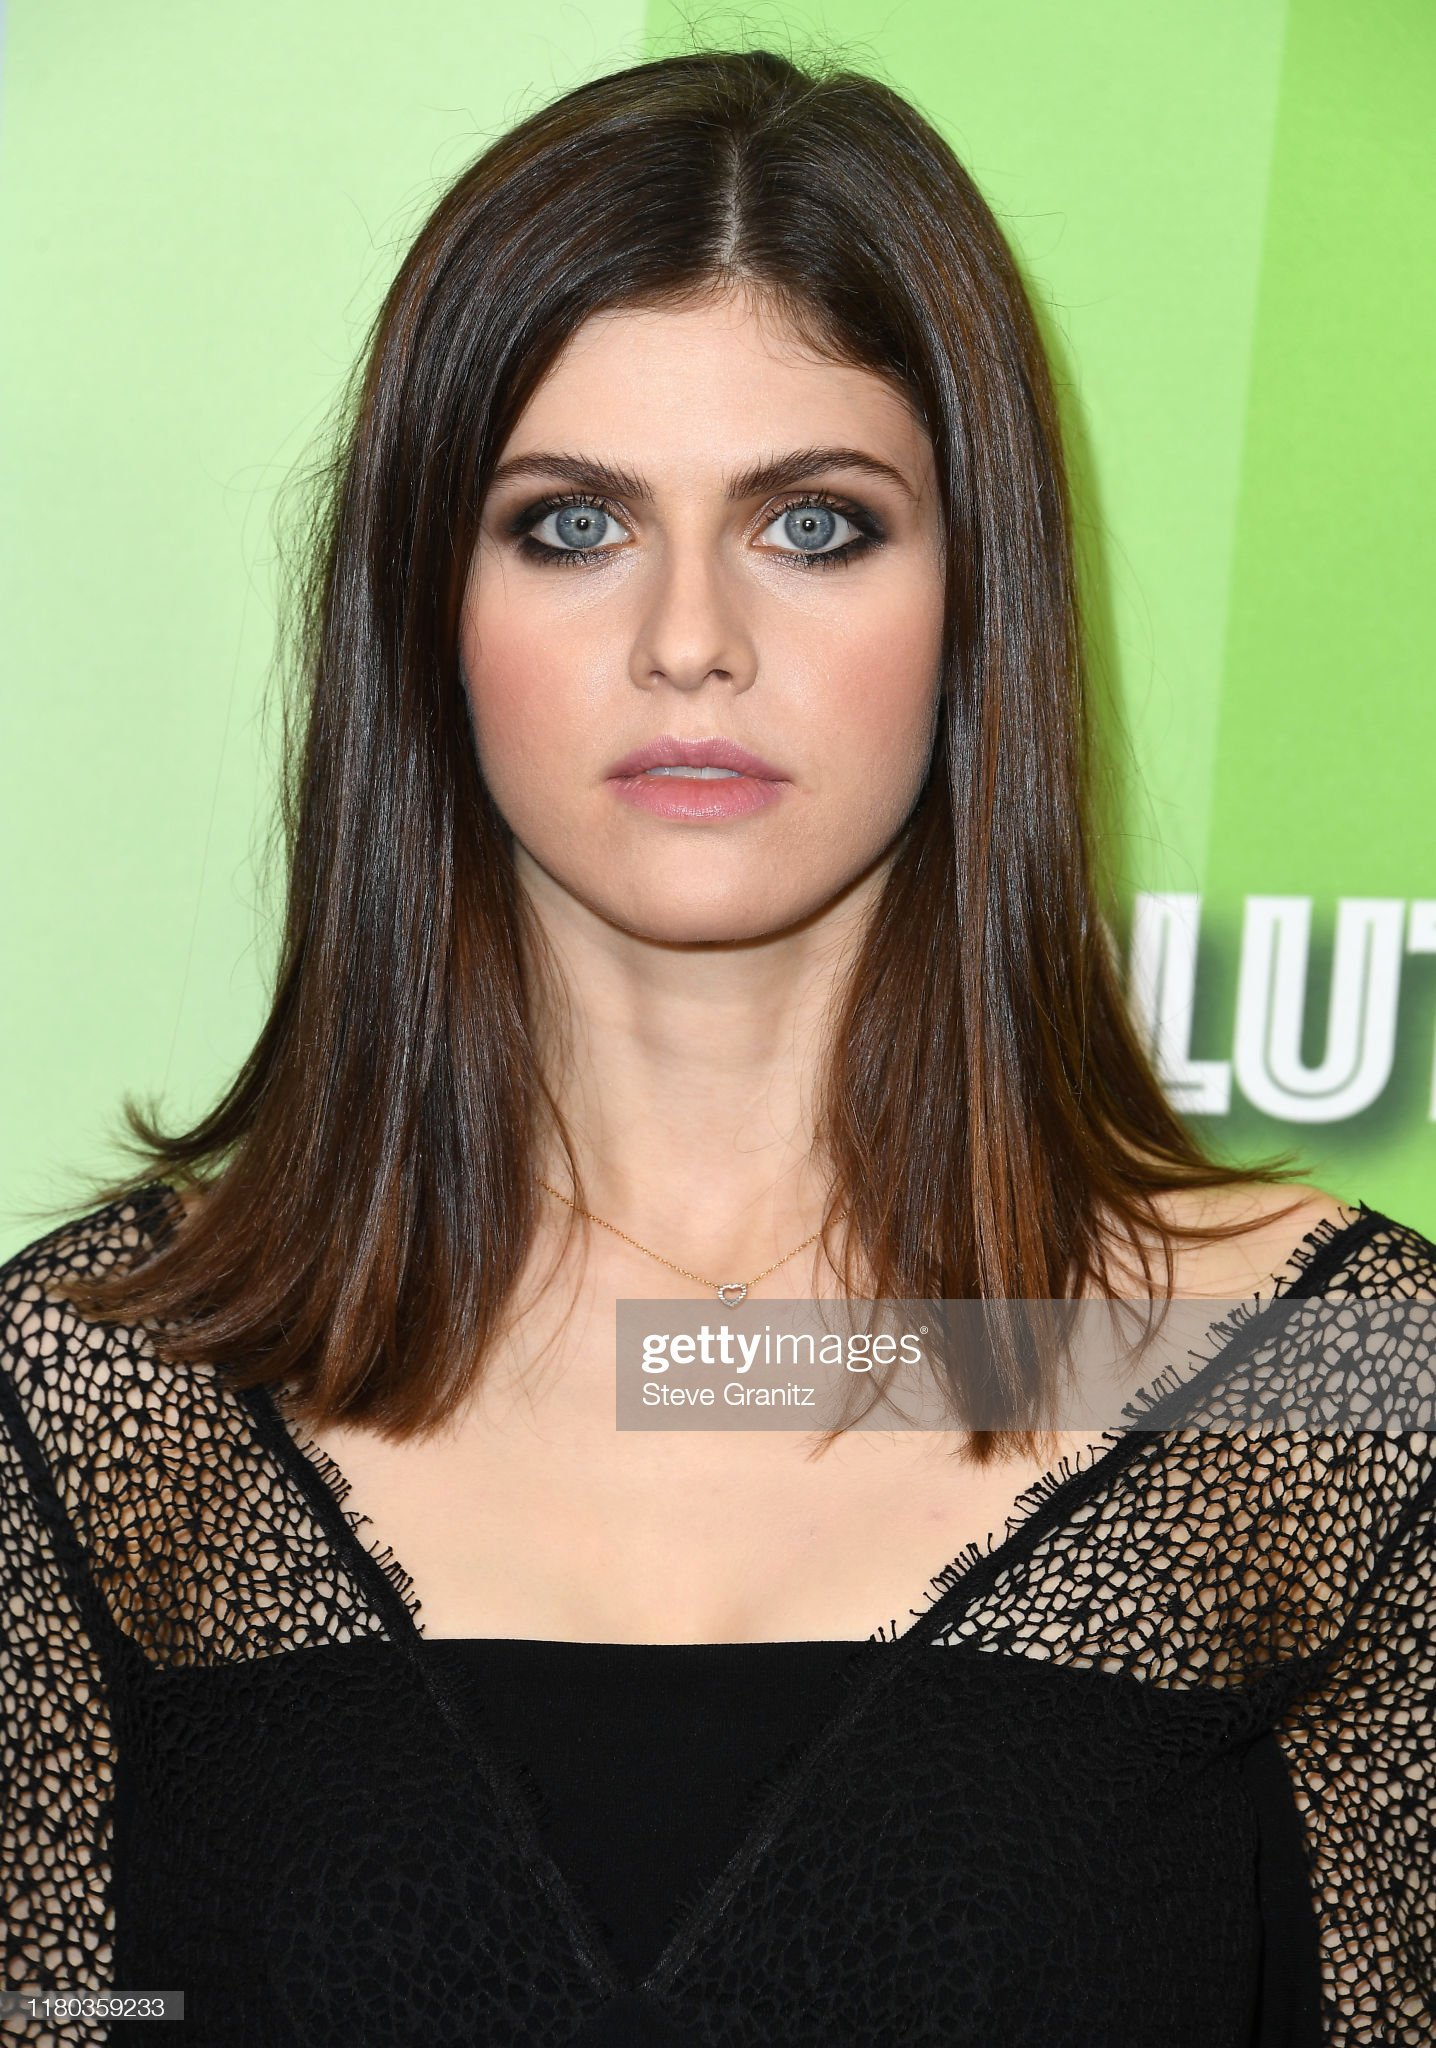 Ojos azules - personas famosas con los ojos de color AZUL Alexandra-daddario-arrives-at-the-amfar-gala-los-angeles-at-milk-on-picture-id1180359233?s=2048x2048